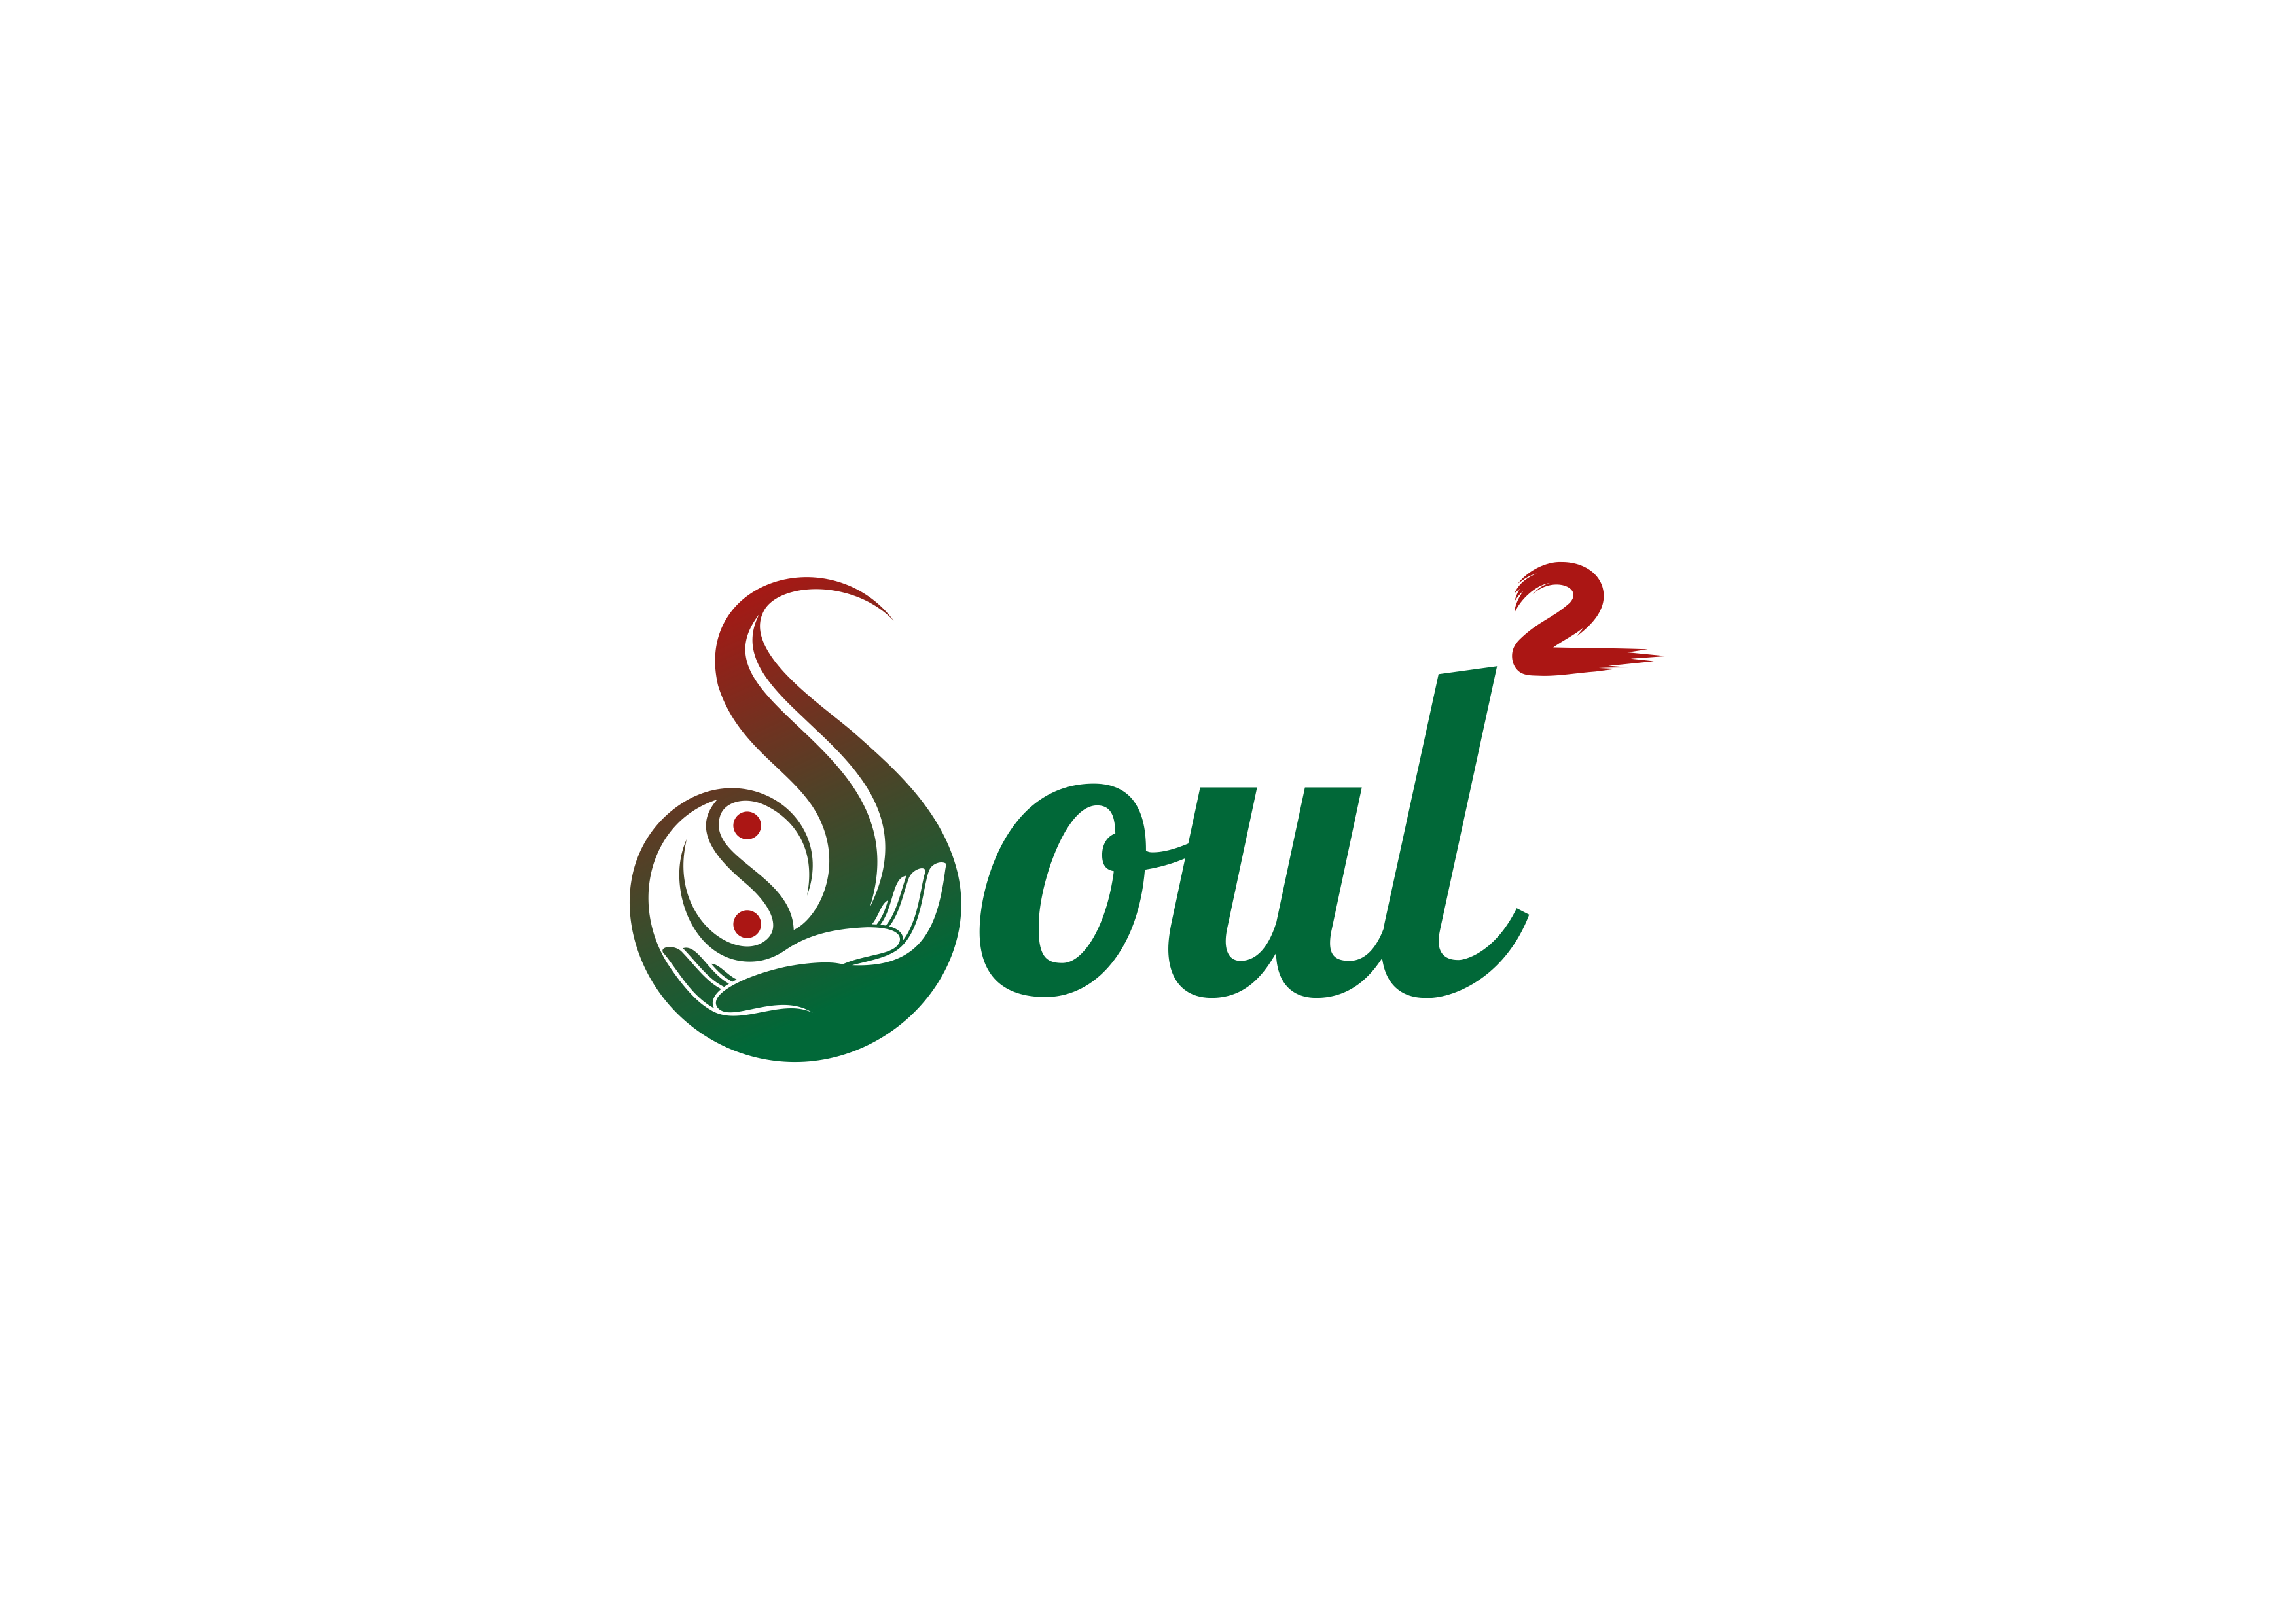 Amazing logo required - using simplicity of the soul to convey healing and feeling